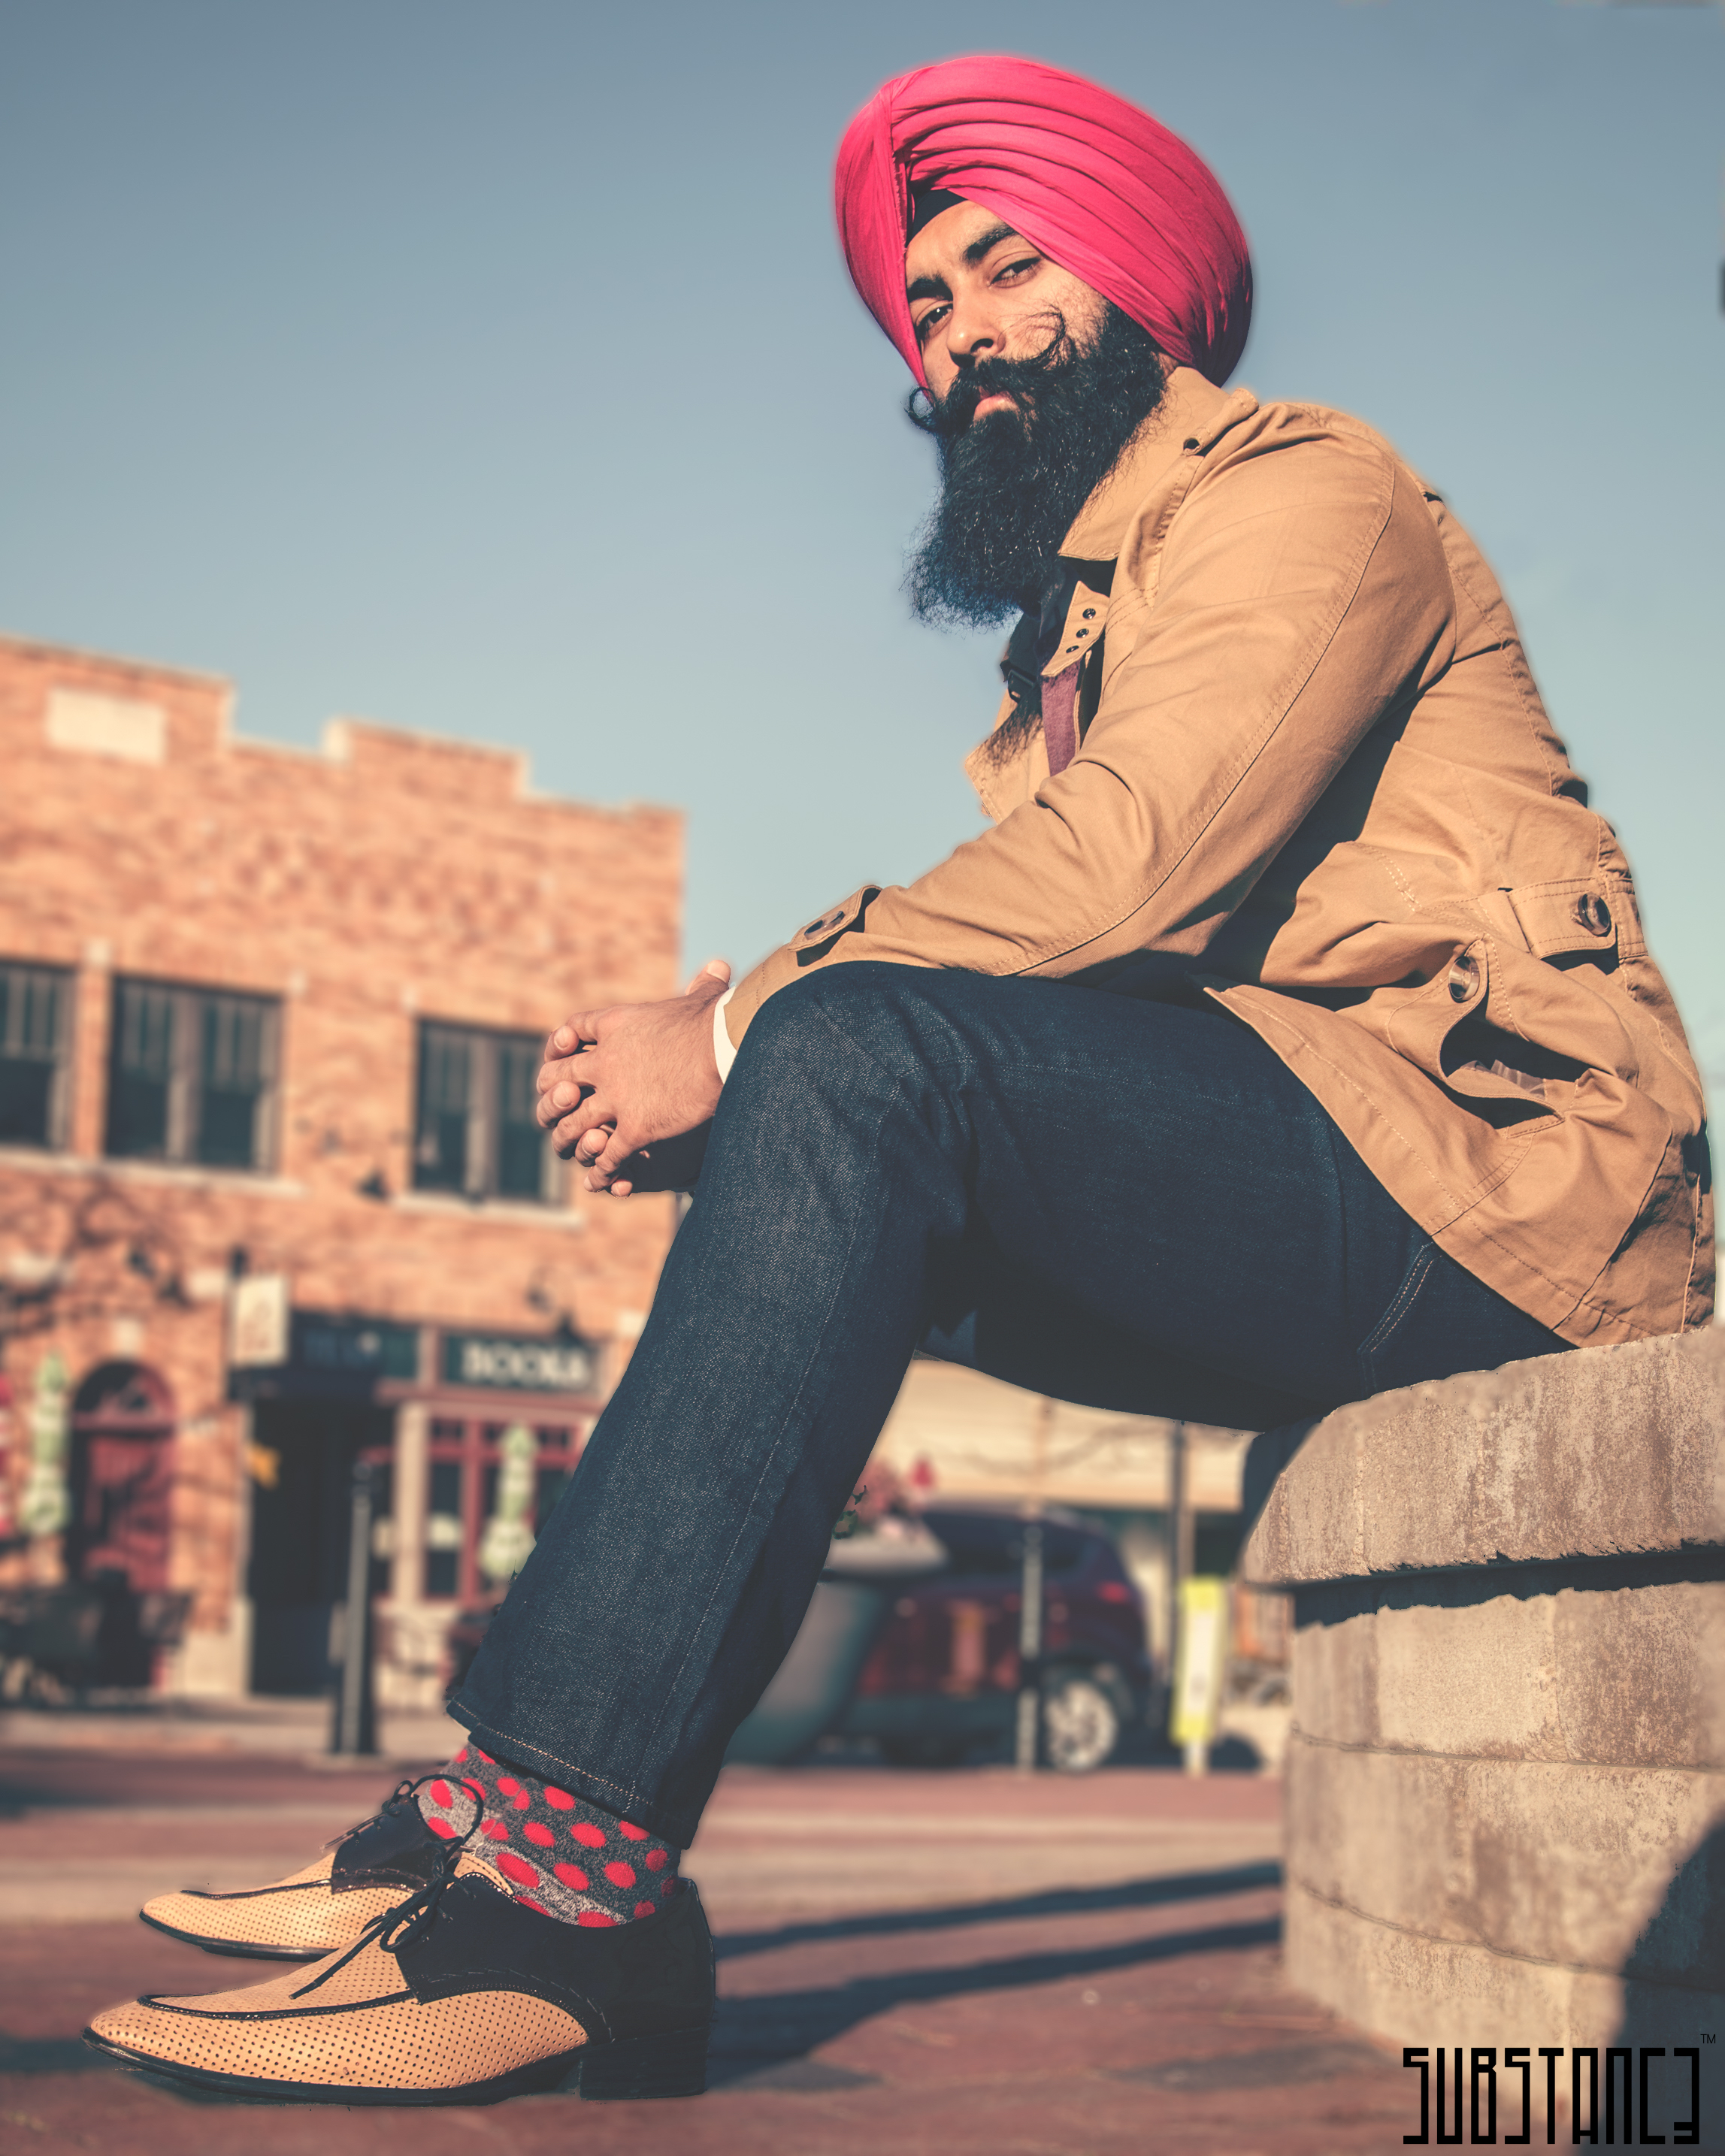 """Credit:Substanc3 Media  """" Don't be the majority. And as always, keep hustling ."""" - Jaspreet Singh"""